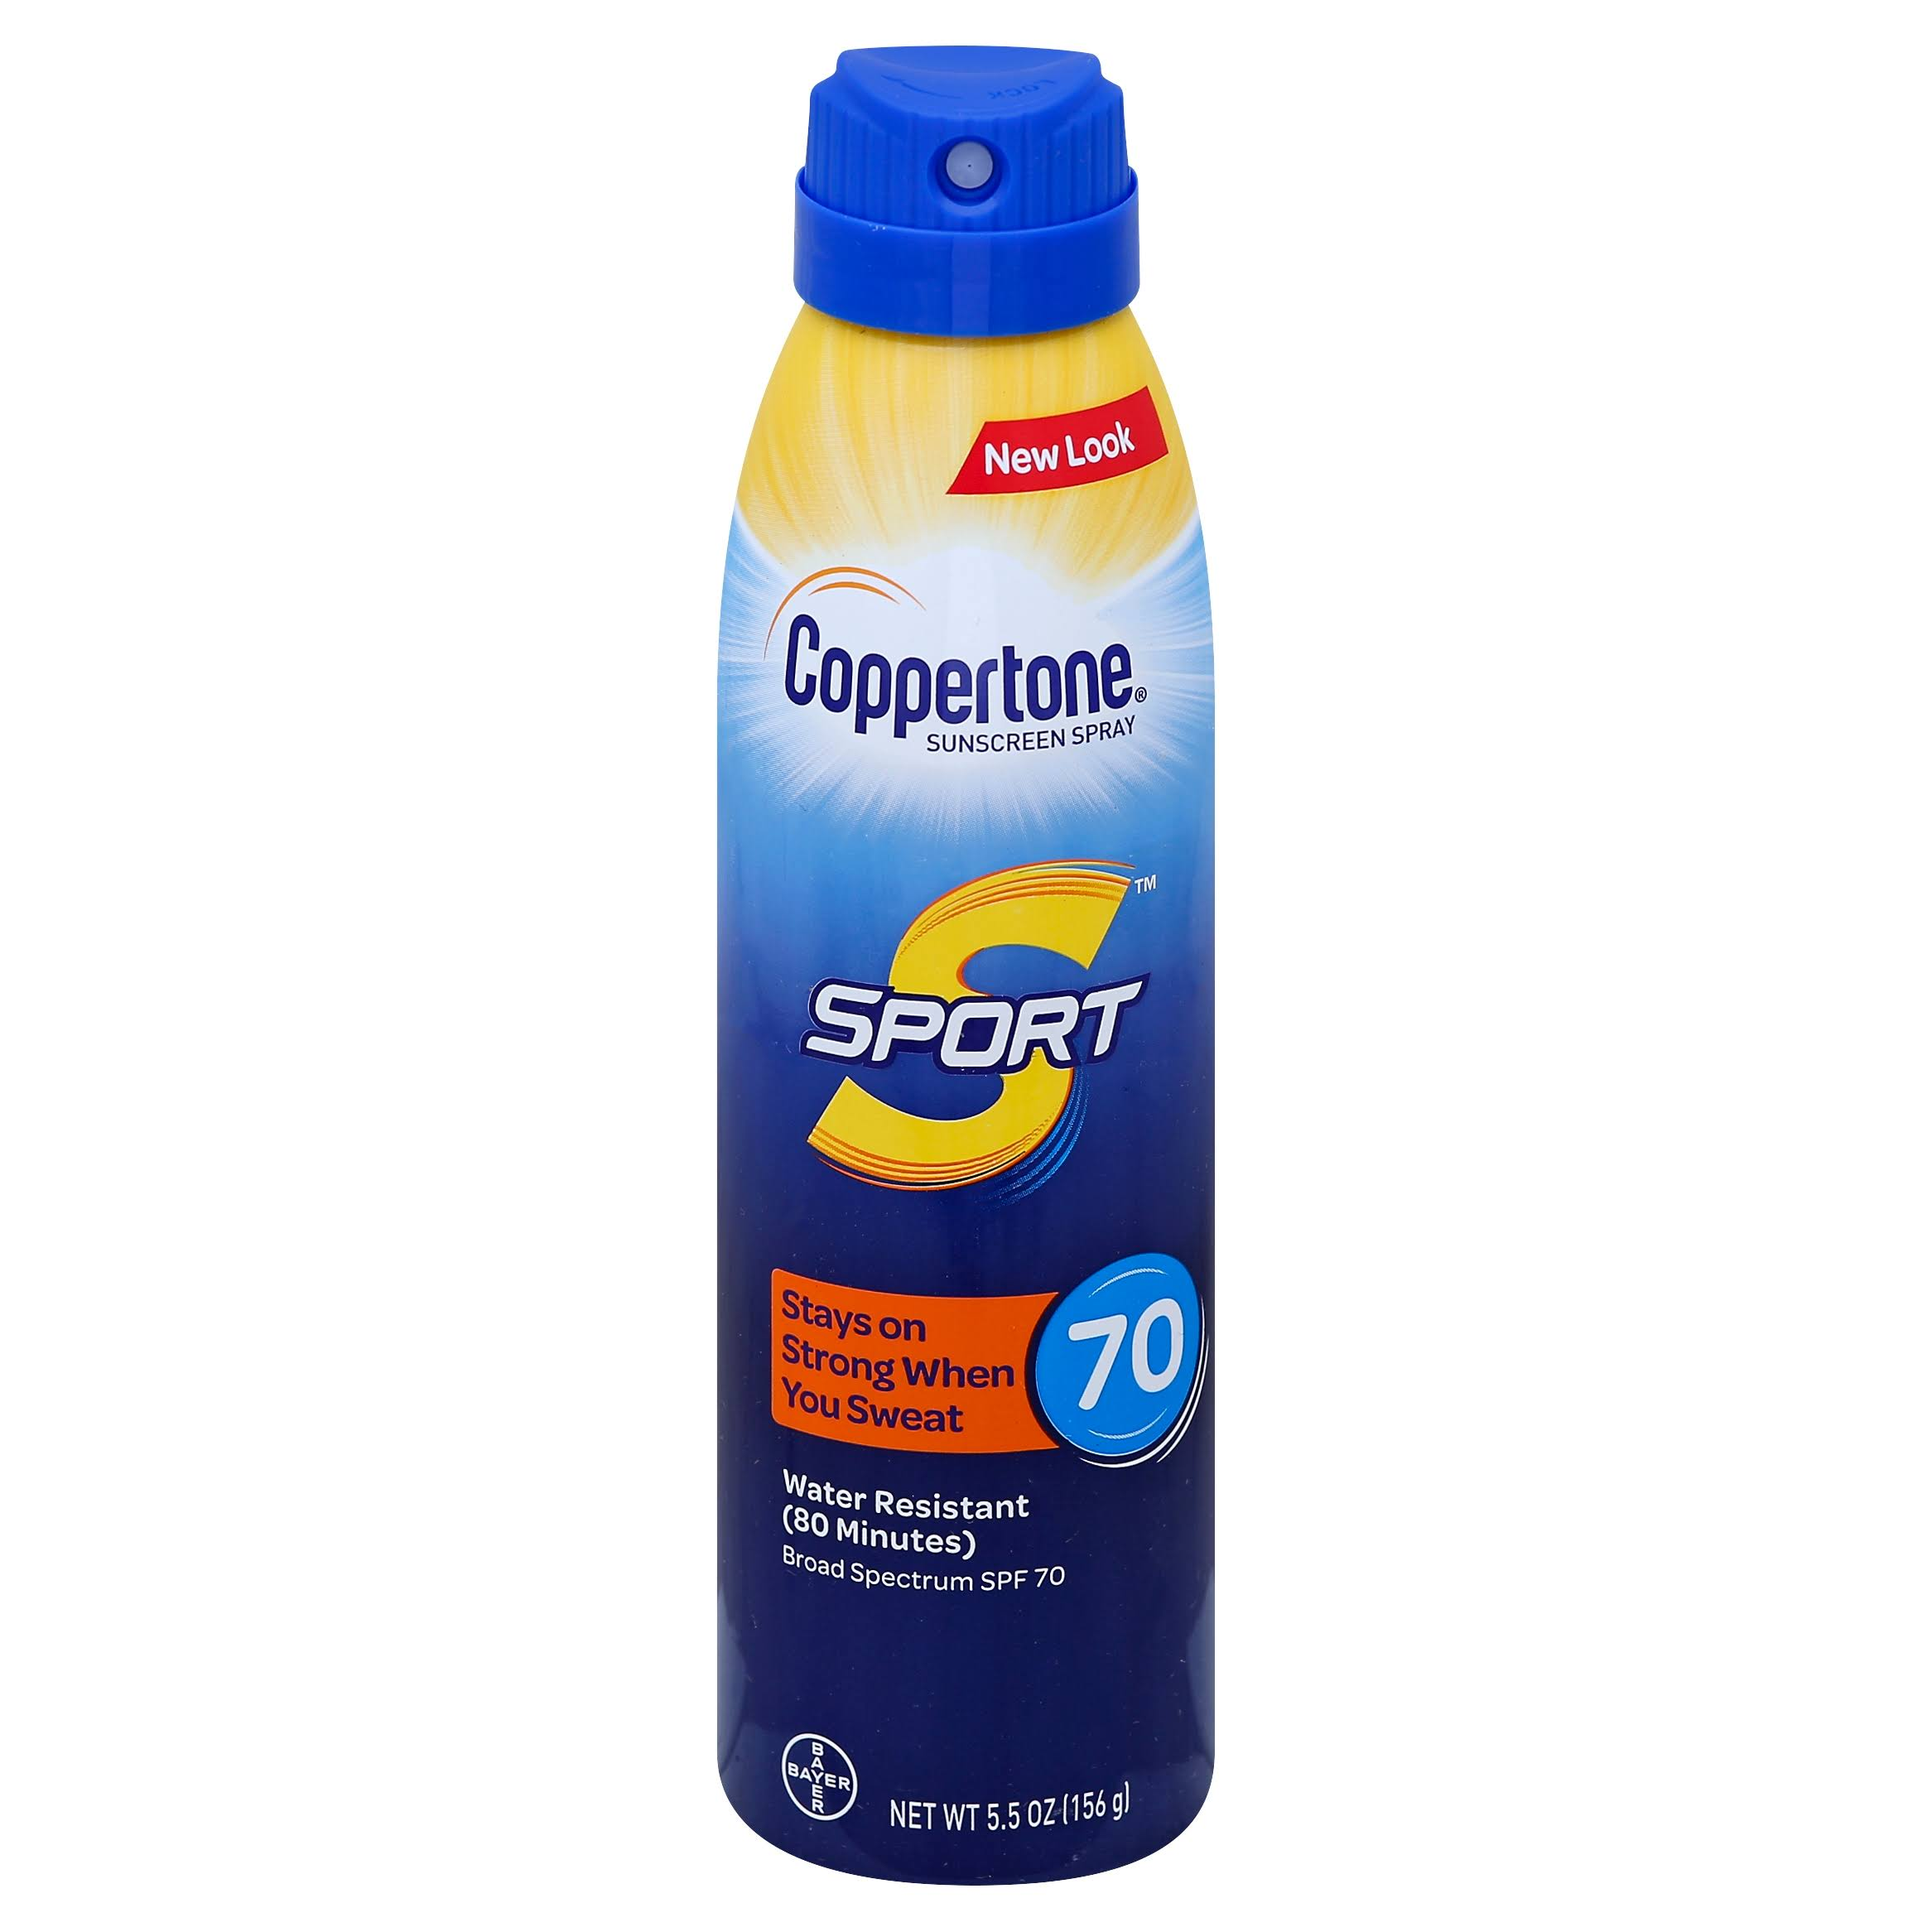 Coppertone Sport C Sunscreen Spray - SPF 70, 5.5oz